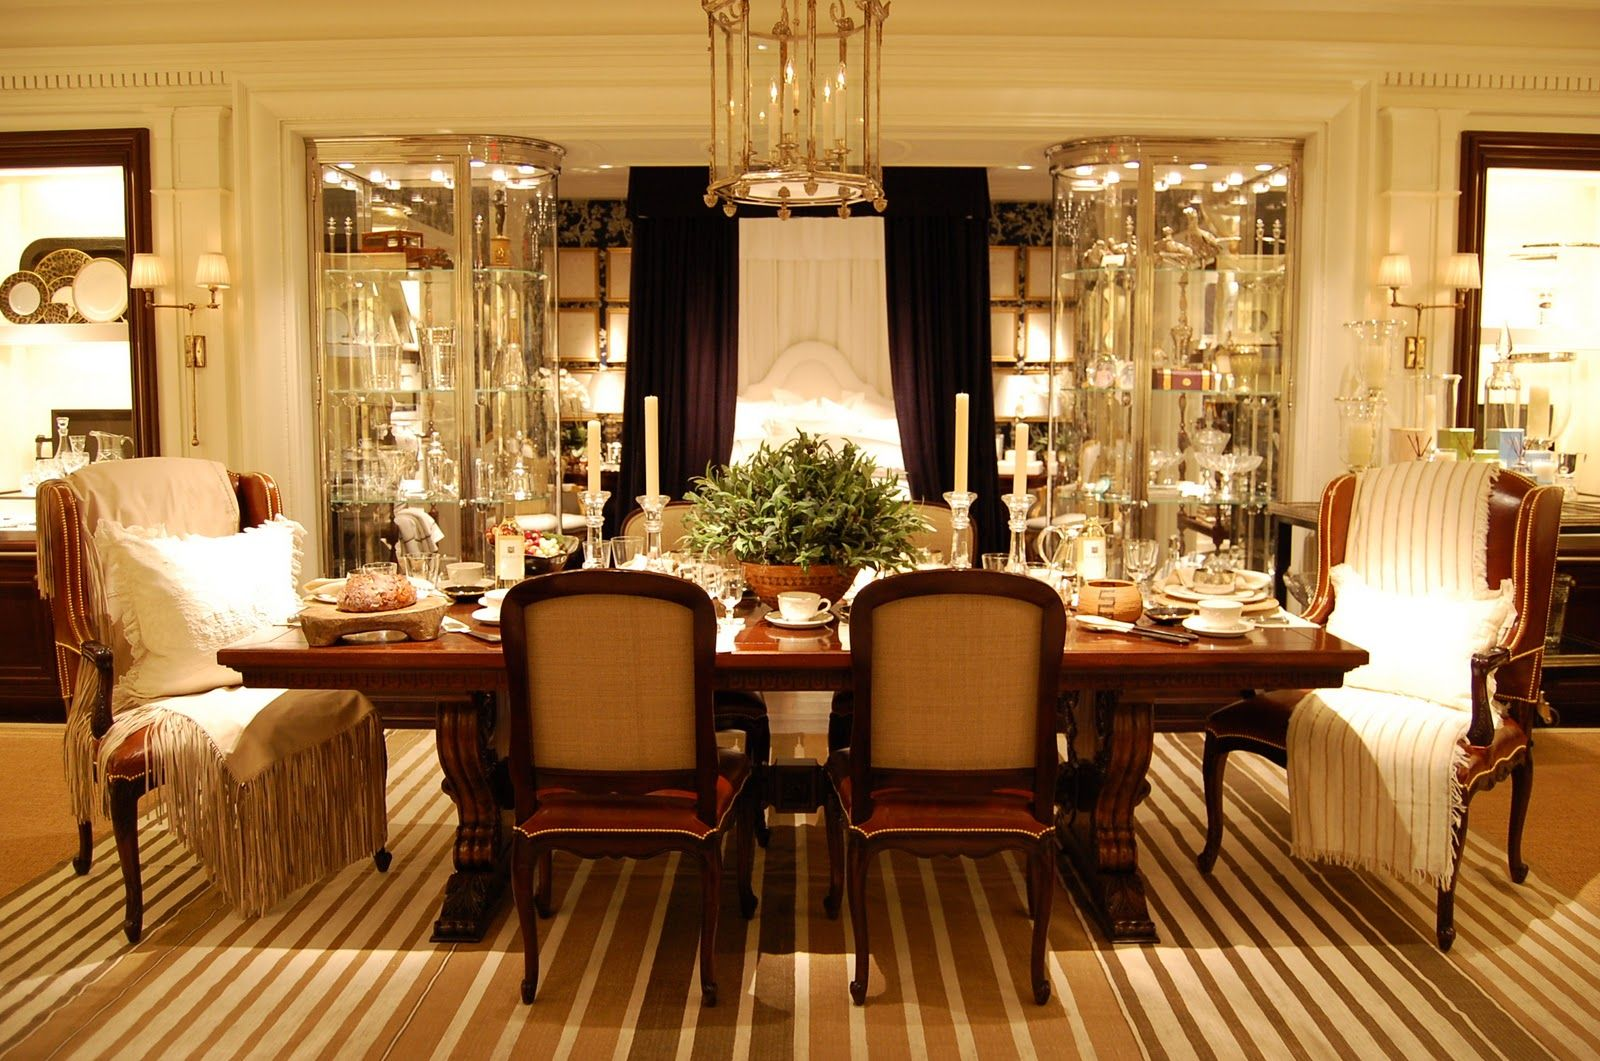 Ralph Lauren Home Interiors | interiors be it rl store interiors or rl home collections they & Ralph Lauren Home Interiors | interiors be it rl store interiors ... azcodes.com